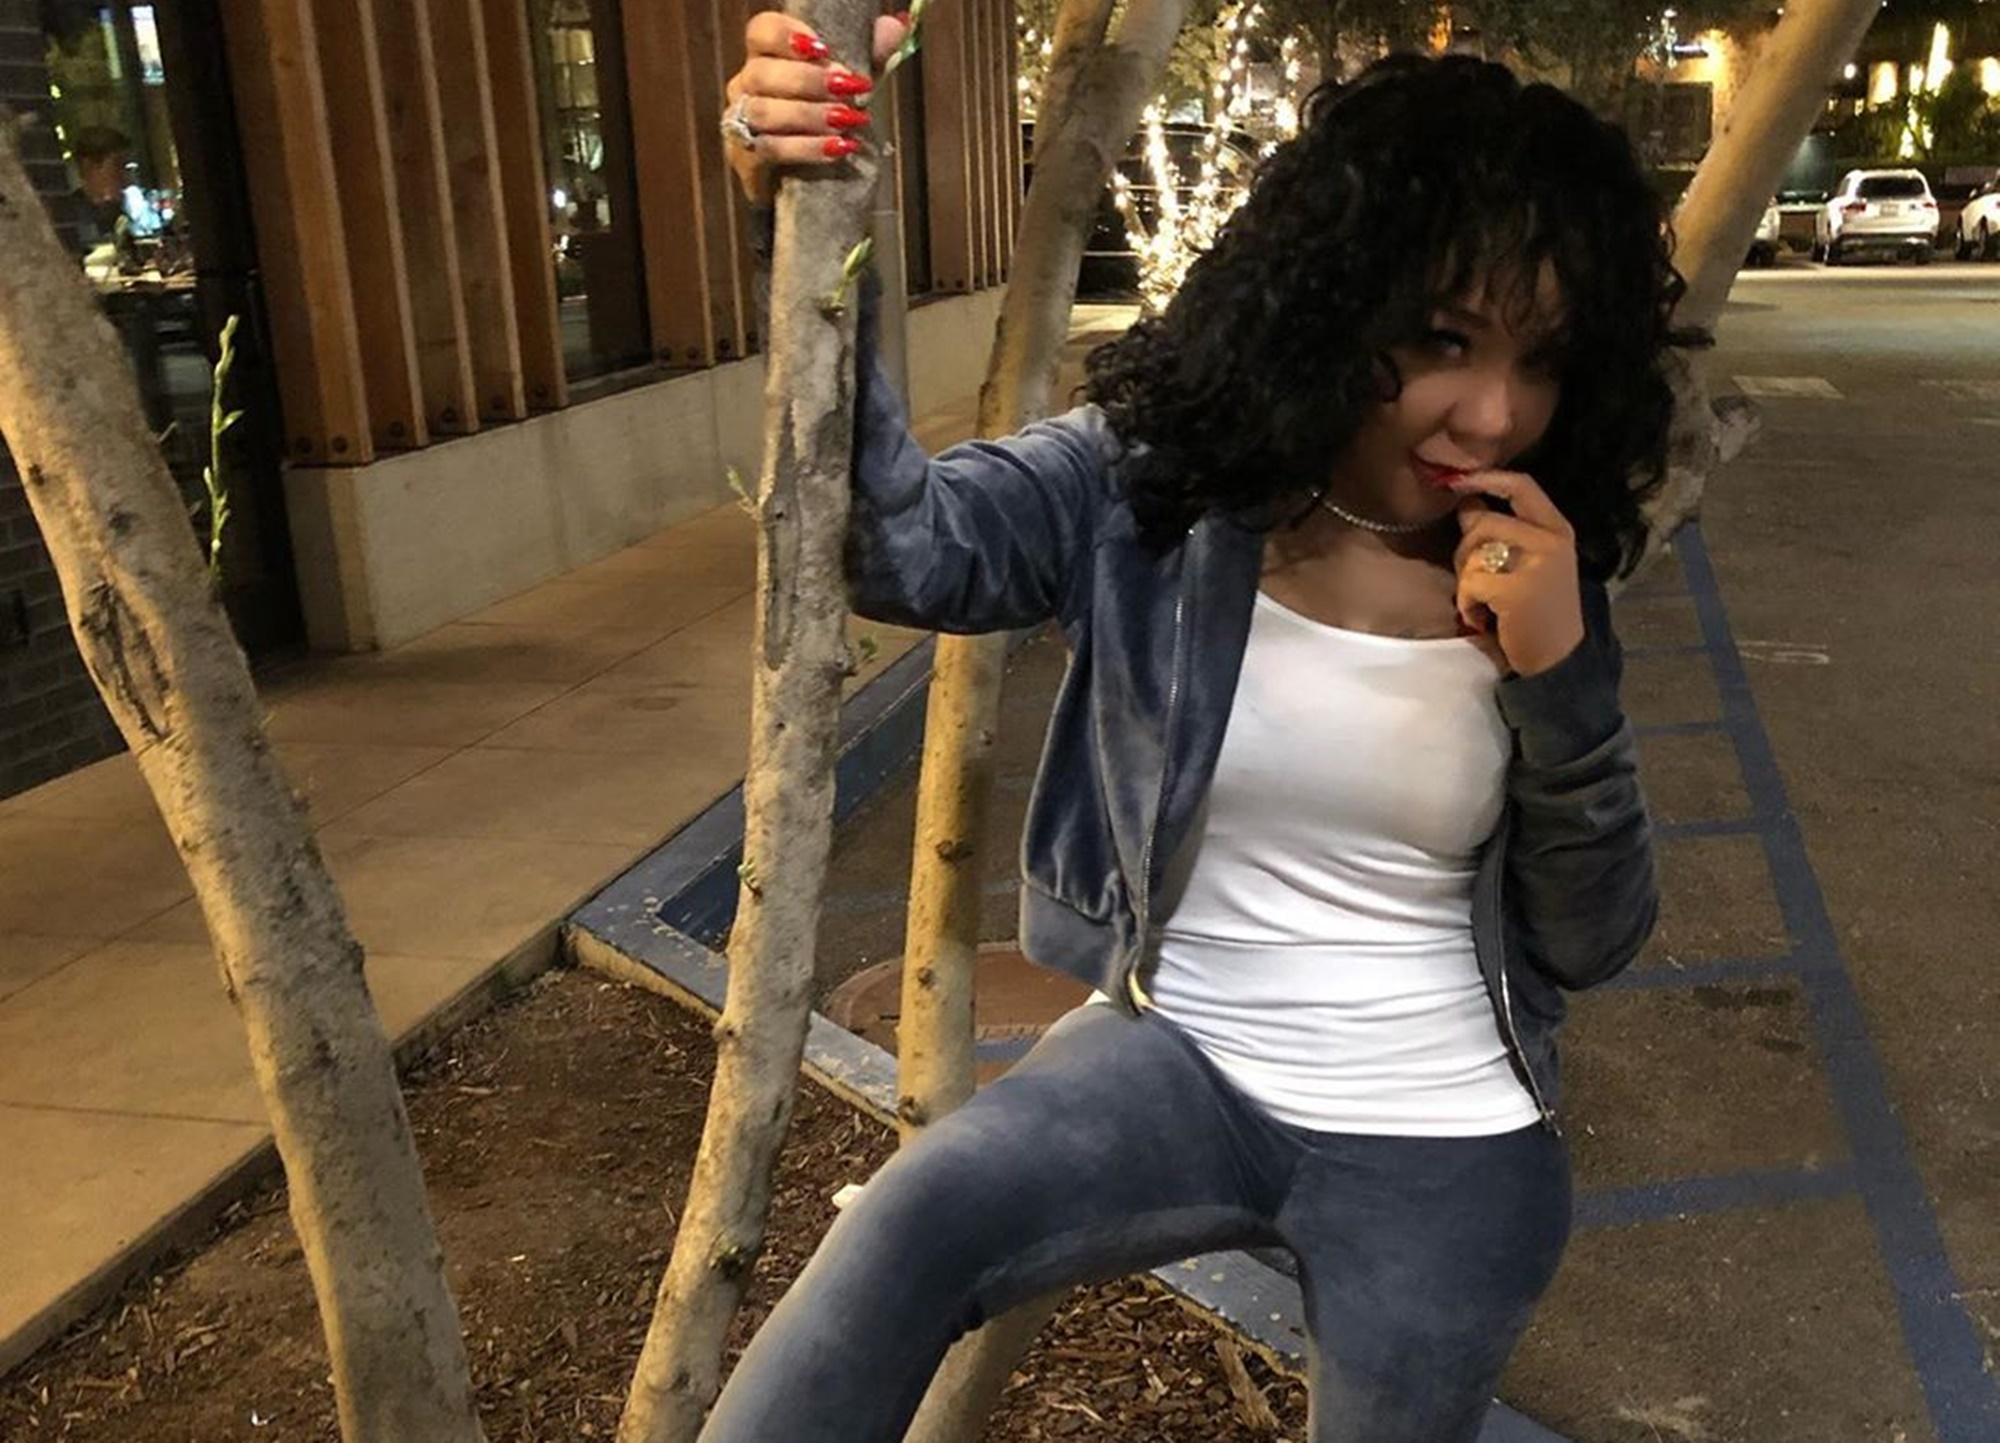 tiny-harris-debuts-drastic-new-look-and-flirts-with-t-i-p-after-he-comes-to-her-rescue